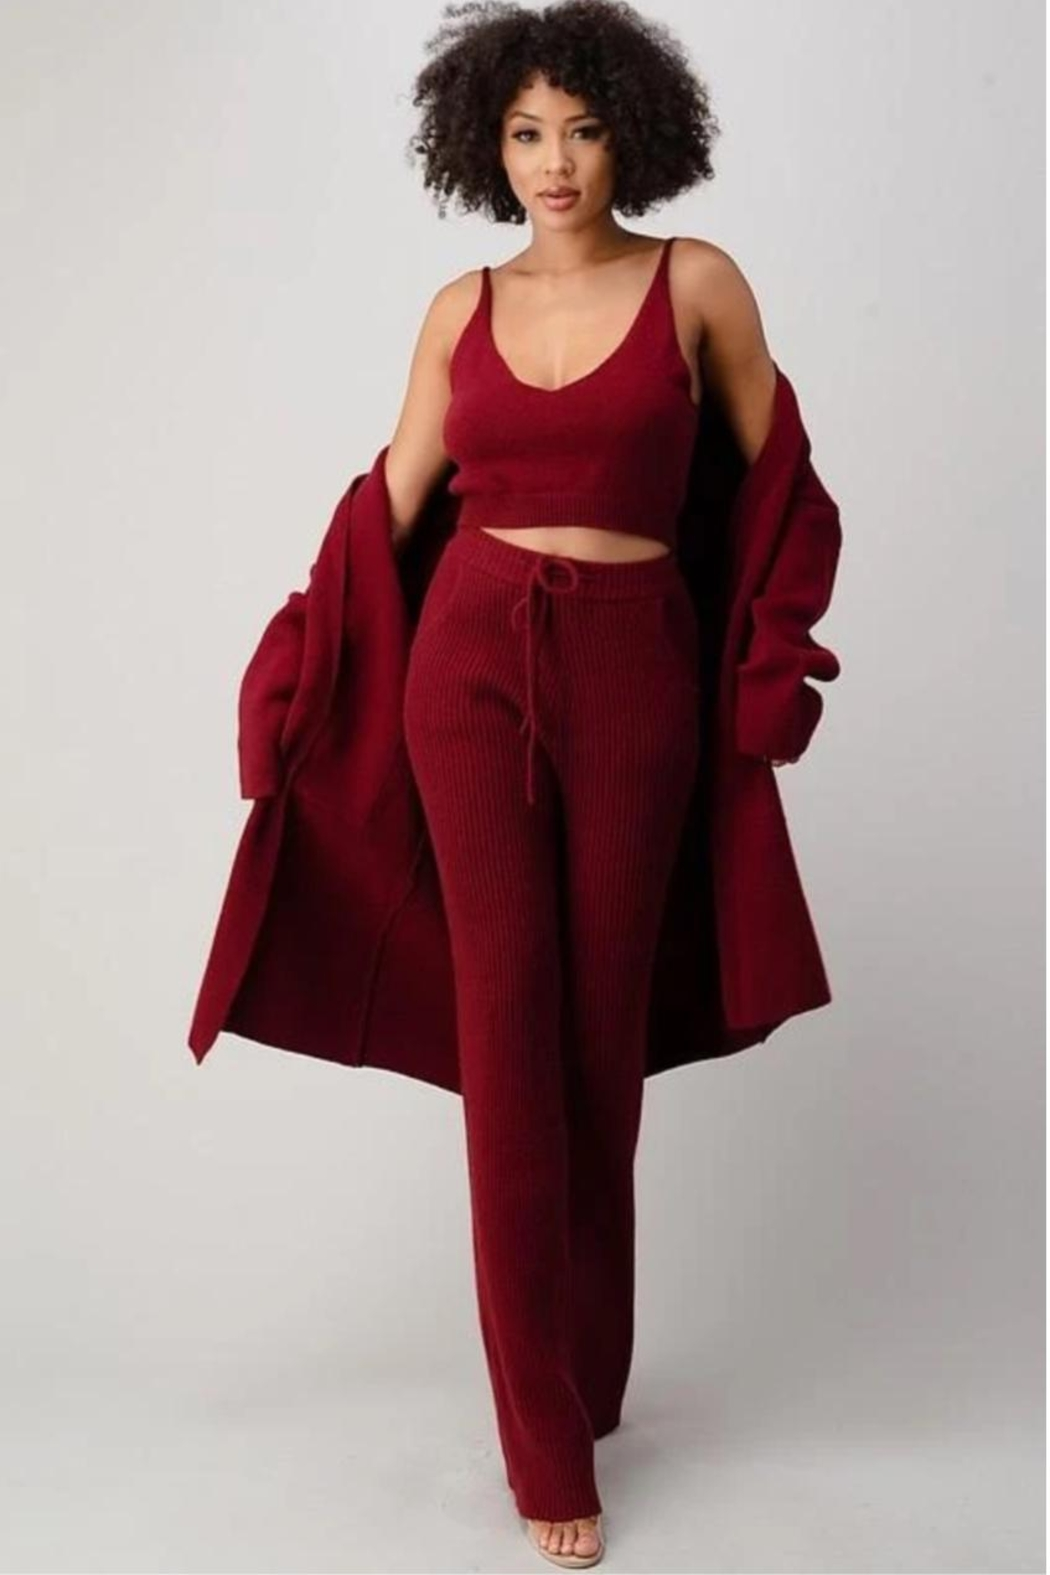 Athina Cherry Red 3pc Knit Pants Set - Main Image